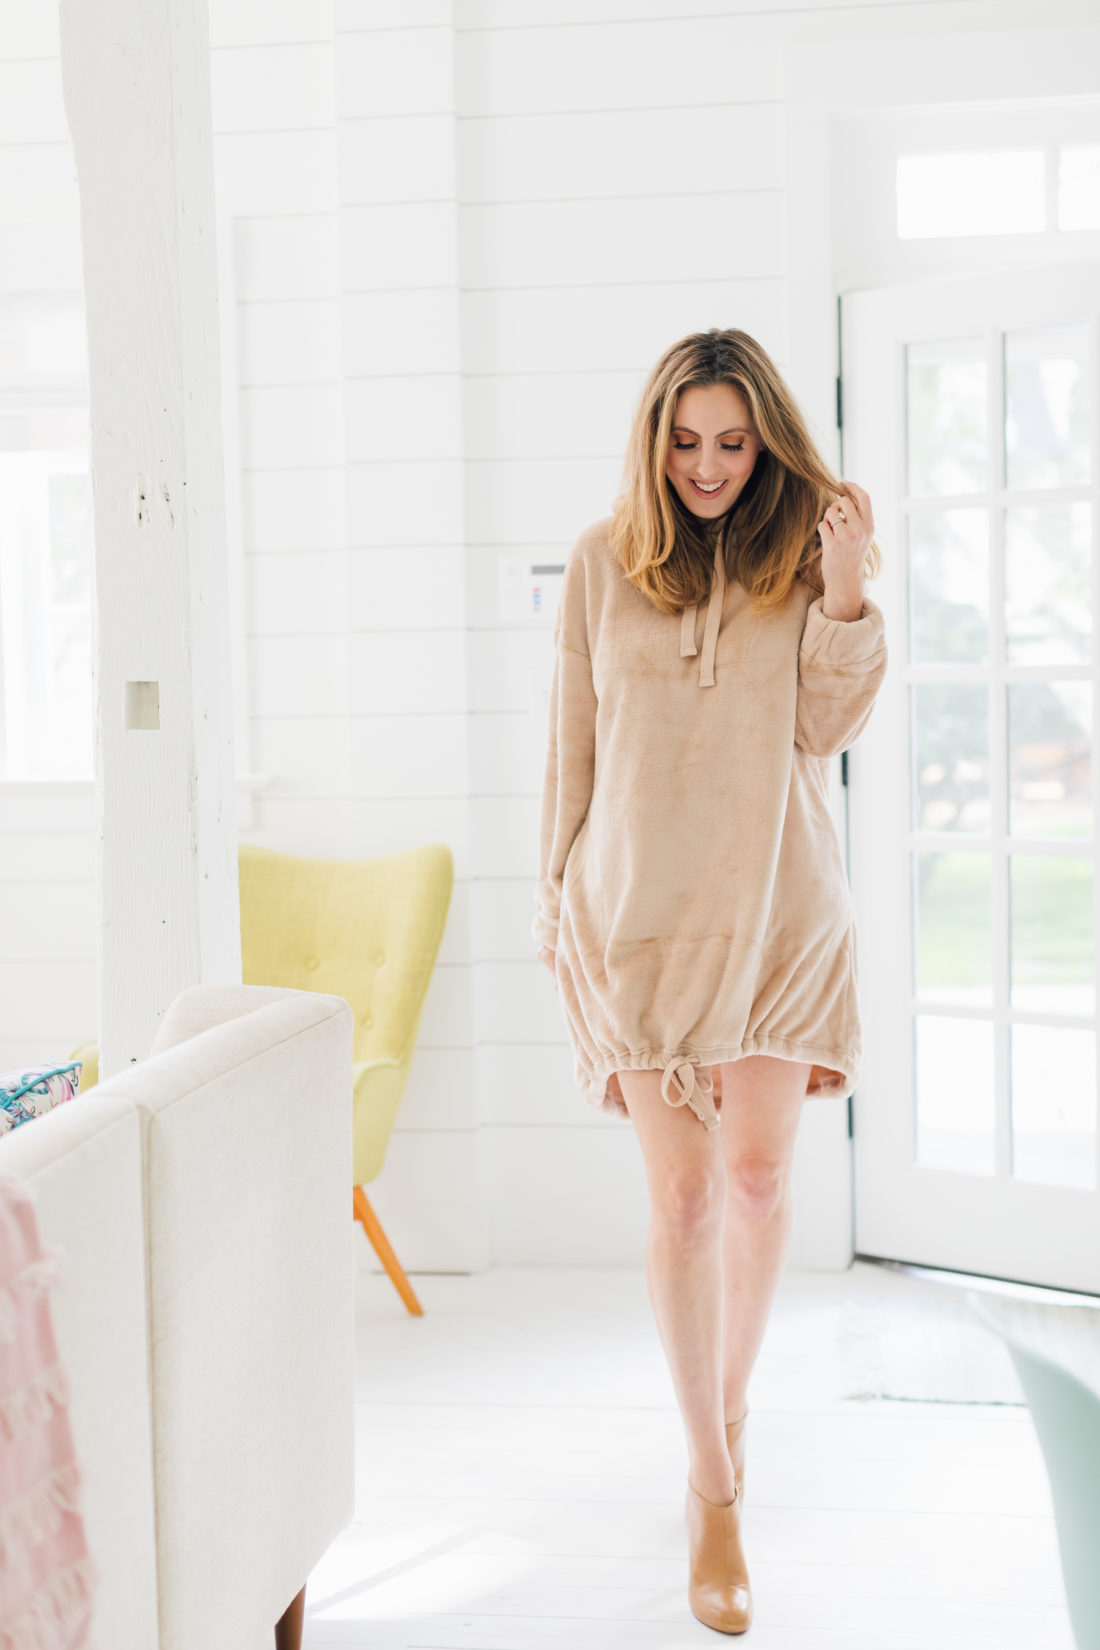 Eva Amurri Martino shares teddy bear chic fashion inspiration